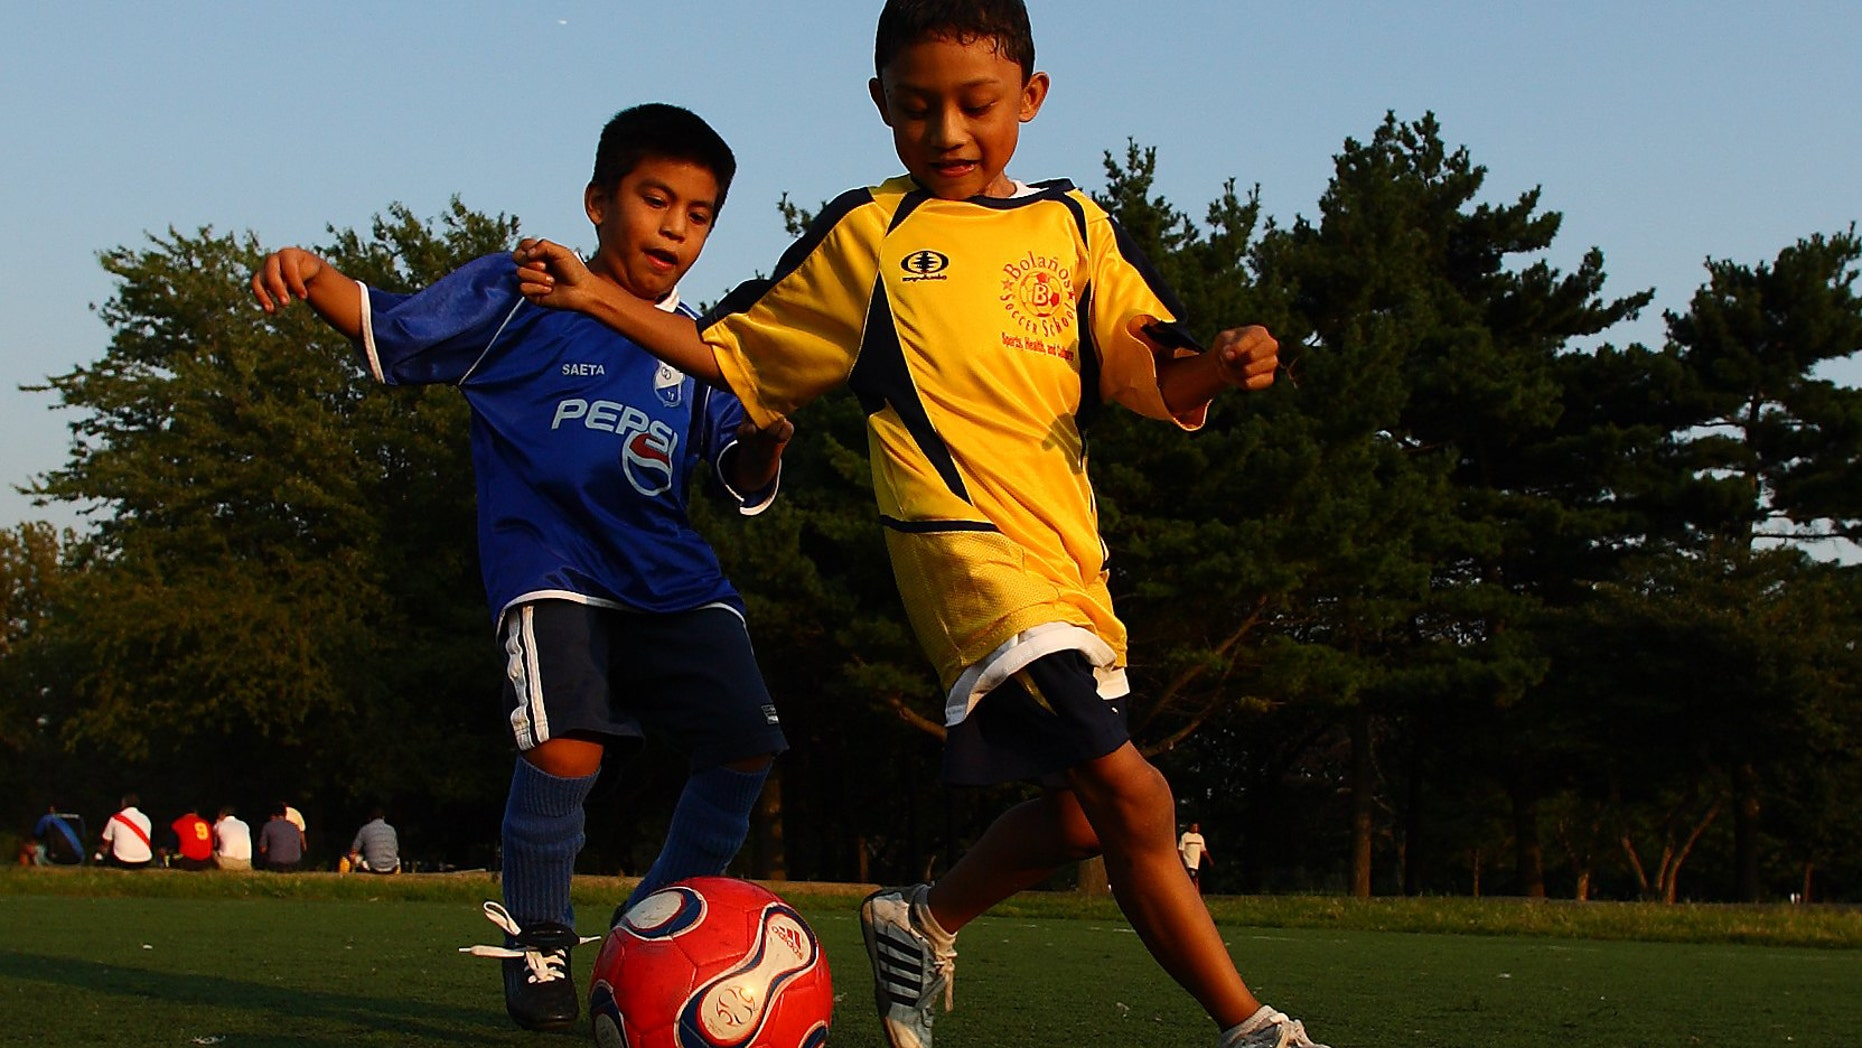 QUEENS, NY - SEPTEMBER 7:  Boys play a pickup game of soccer as their adult relatives participate in the Fedeiguayas Soccer League on September 7, 2007 at Flushing Meadows Park in the Queens Borough of  New York. A large Hispanic population from Mexico, Central and South America now living in New York congregate to this park every weekend to play soccer, and relax with family and friends. They play on ten soccer fields throughout the park and play goes from early morning till dusk.  The participants are highly skilled semi pro level players and each team dresses in the colors of their country and play as if it was their own  World Cup.  Matches are very competitive as the pride of each team's country is on the line.  (Photo by Al Bello/Getty Images)